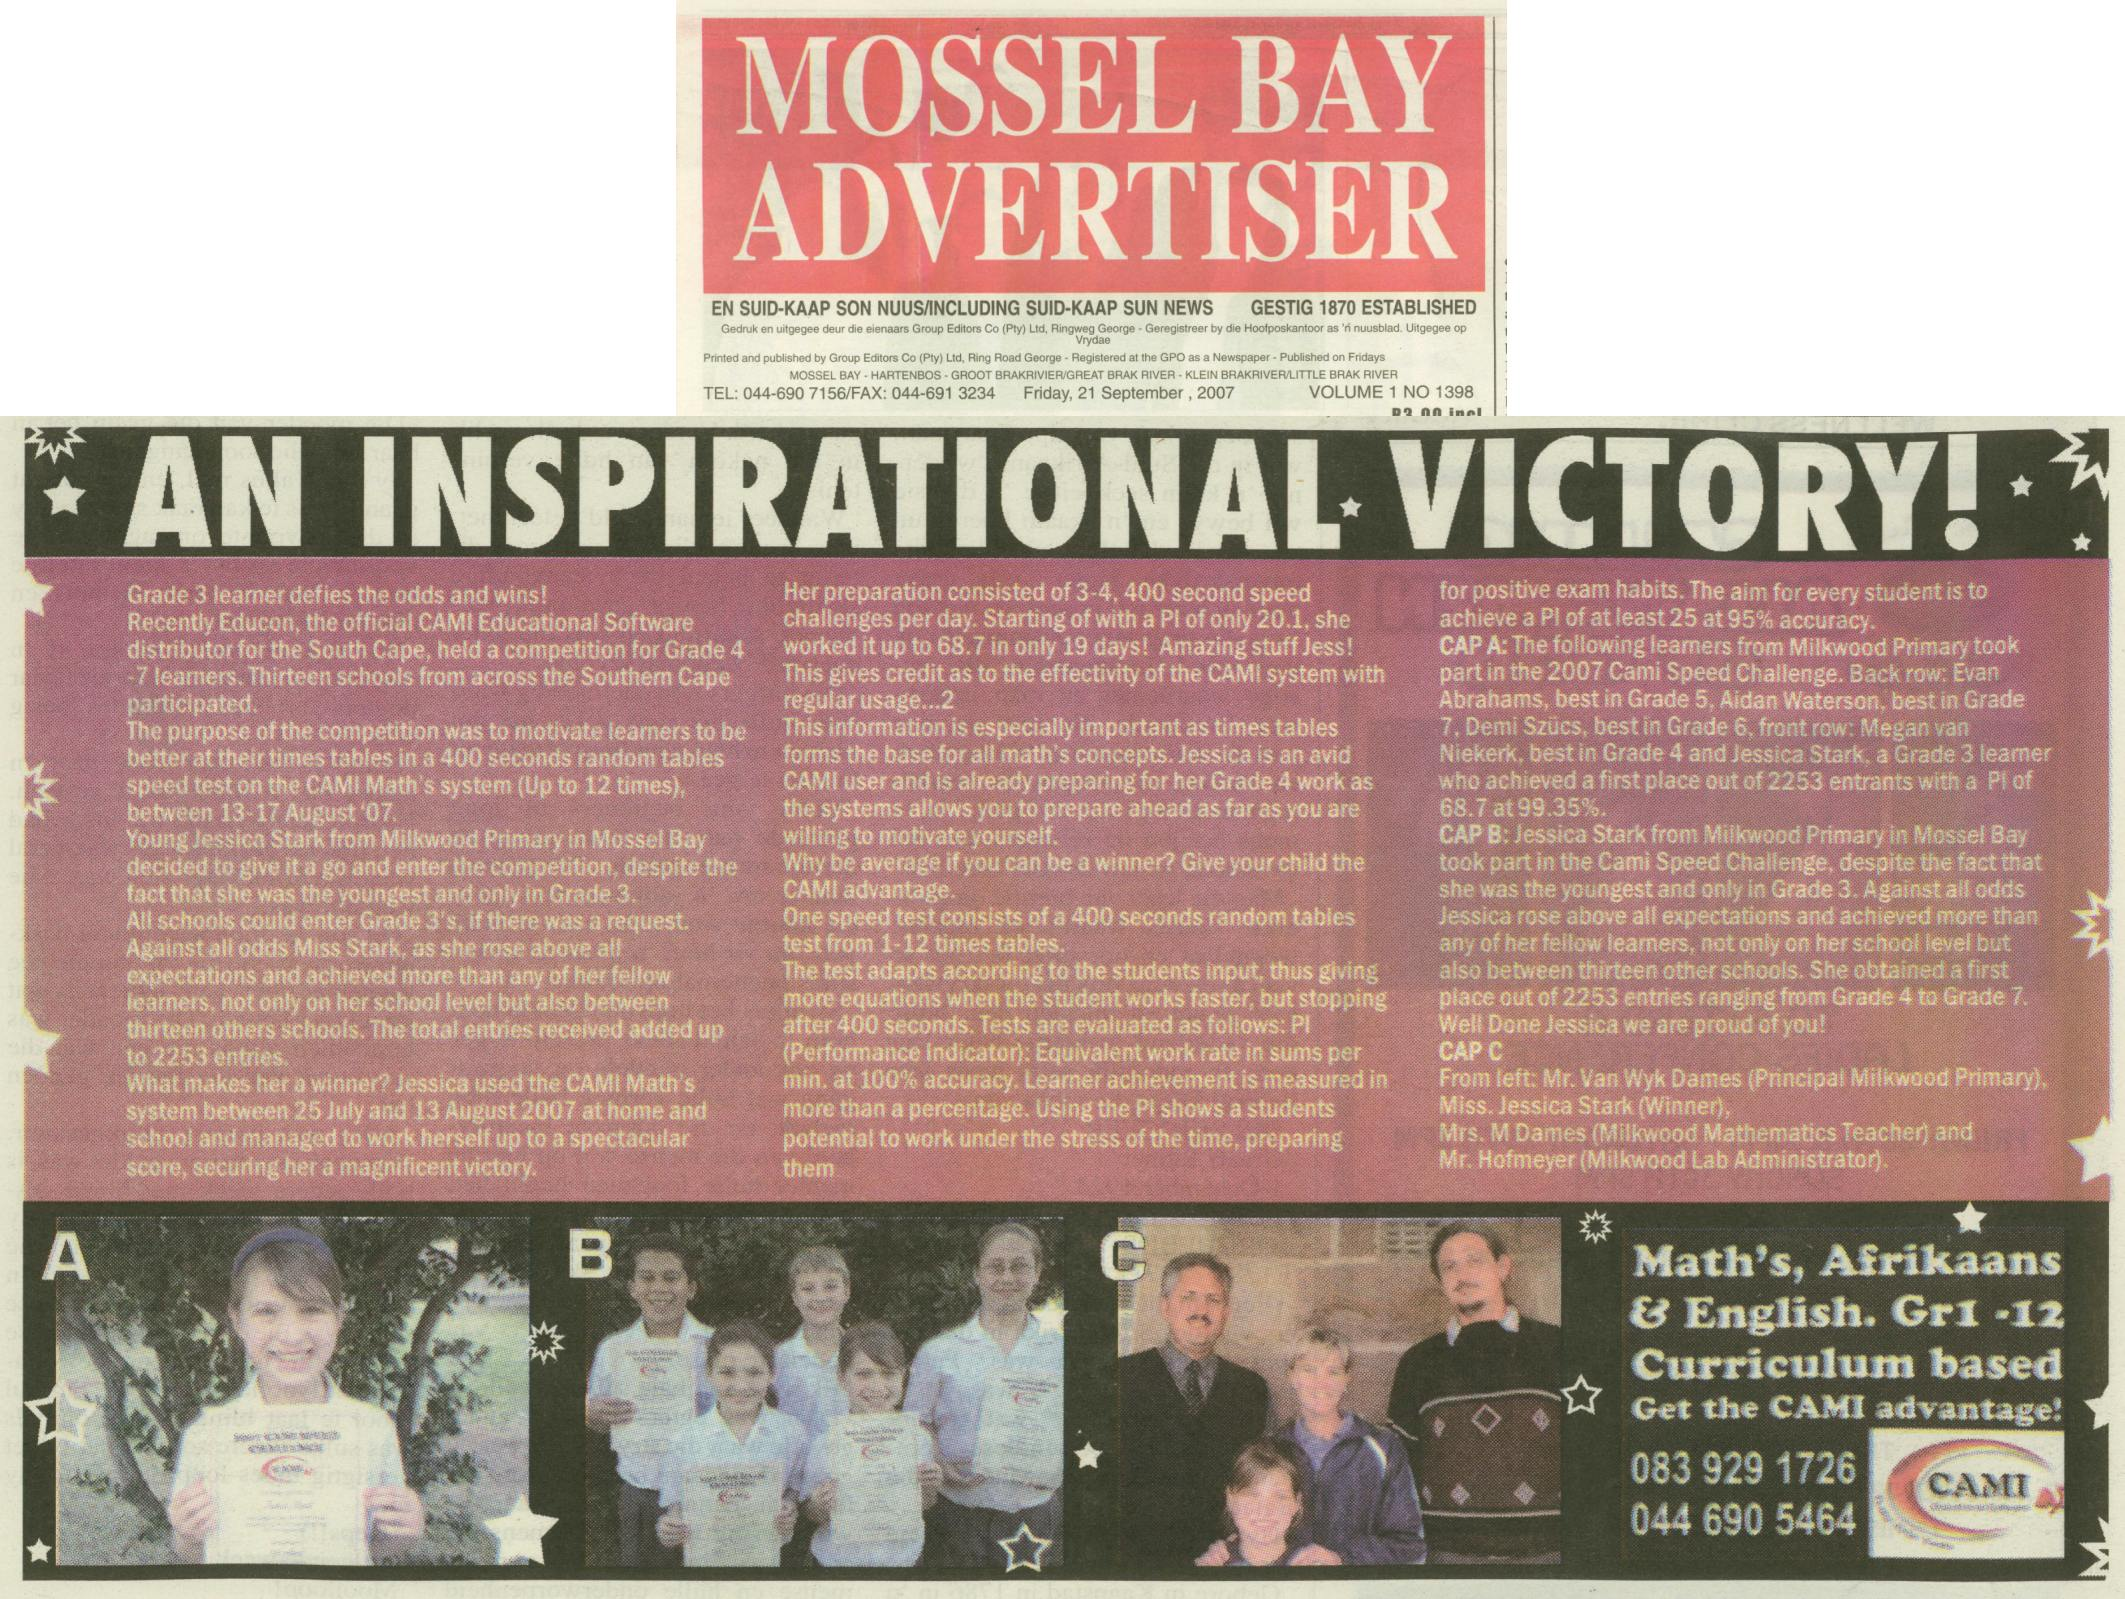 The Mossel Bay Advertiser, 21st September, 2007